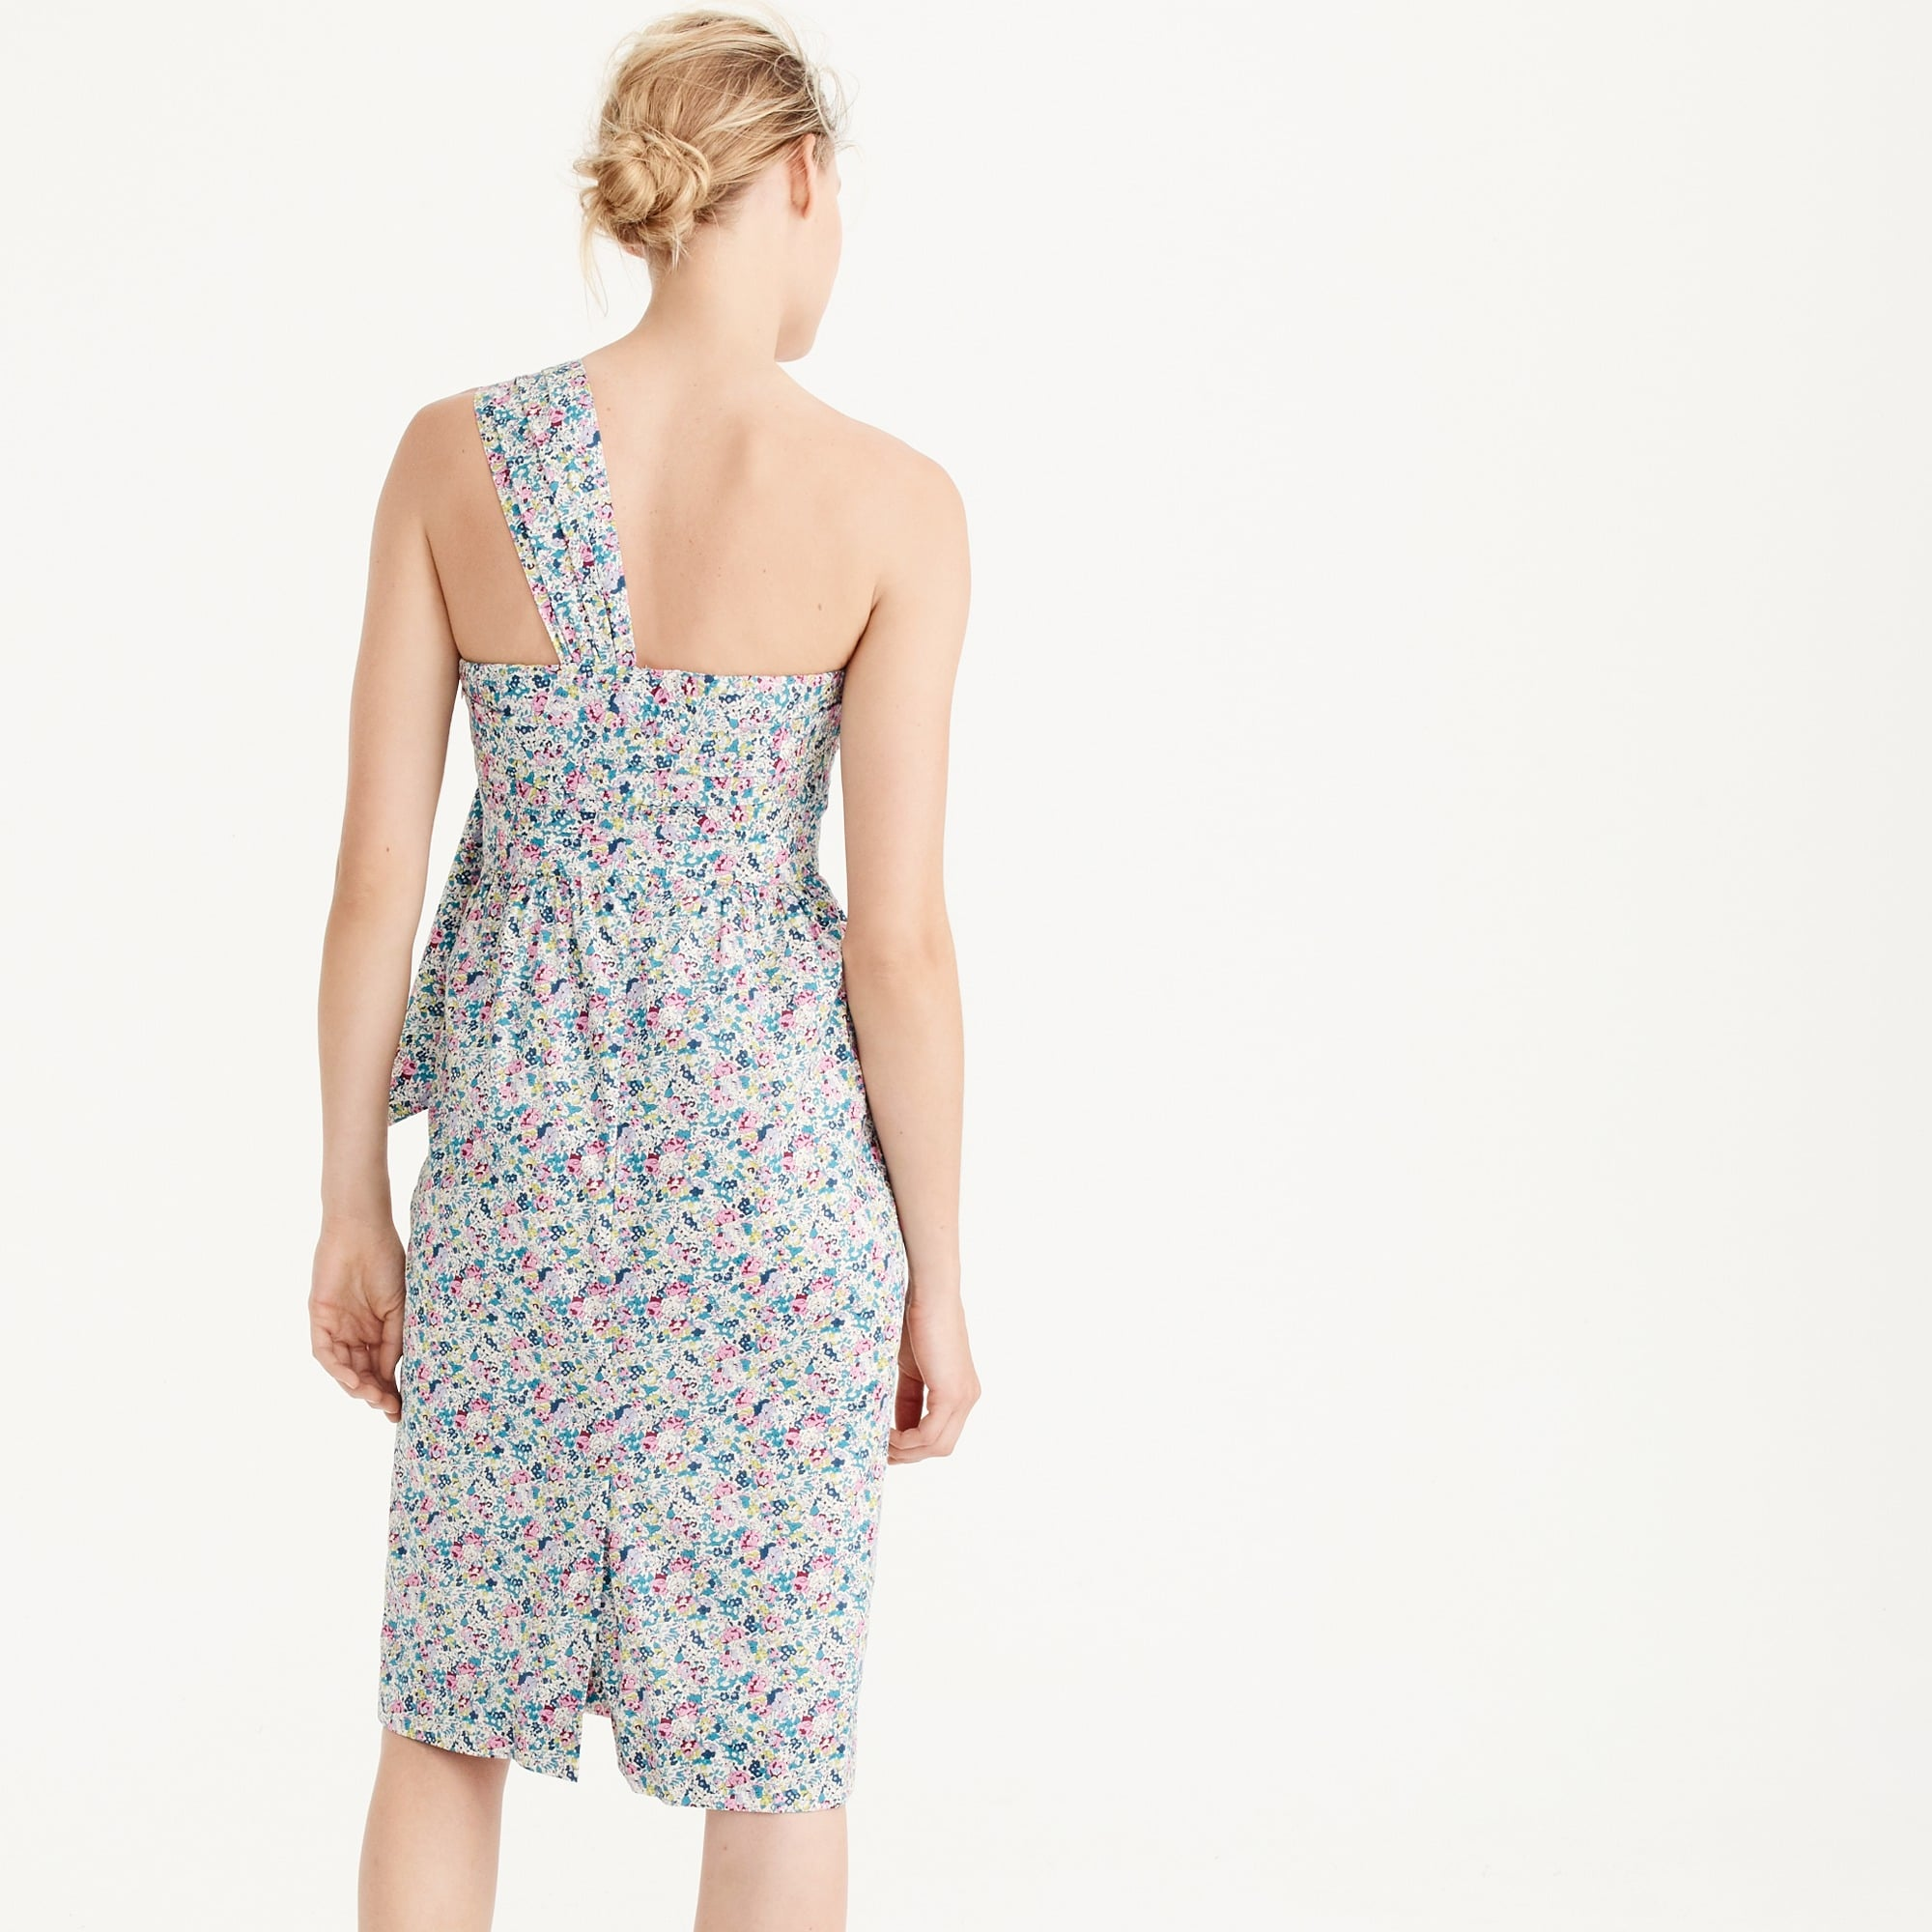 Petite one-shoulder tie dress in Liberty® Claire-Aude floral